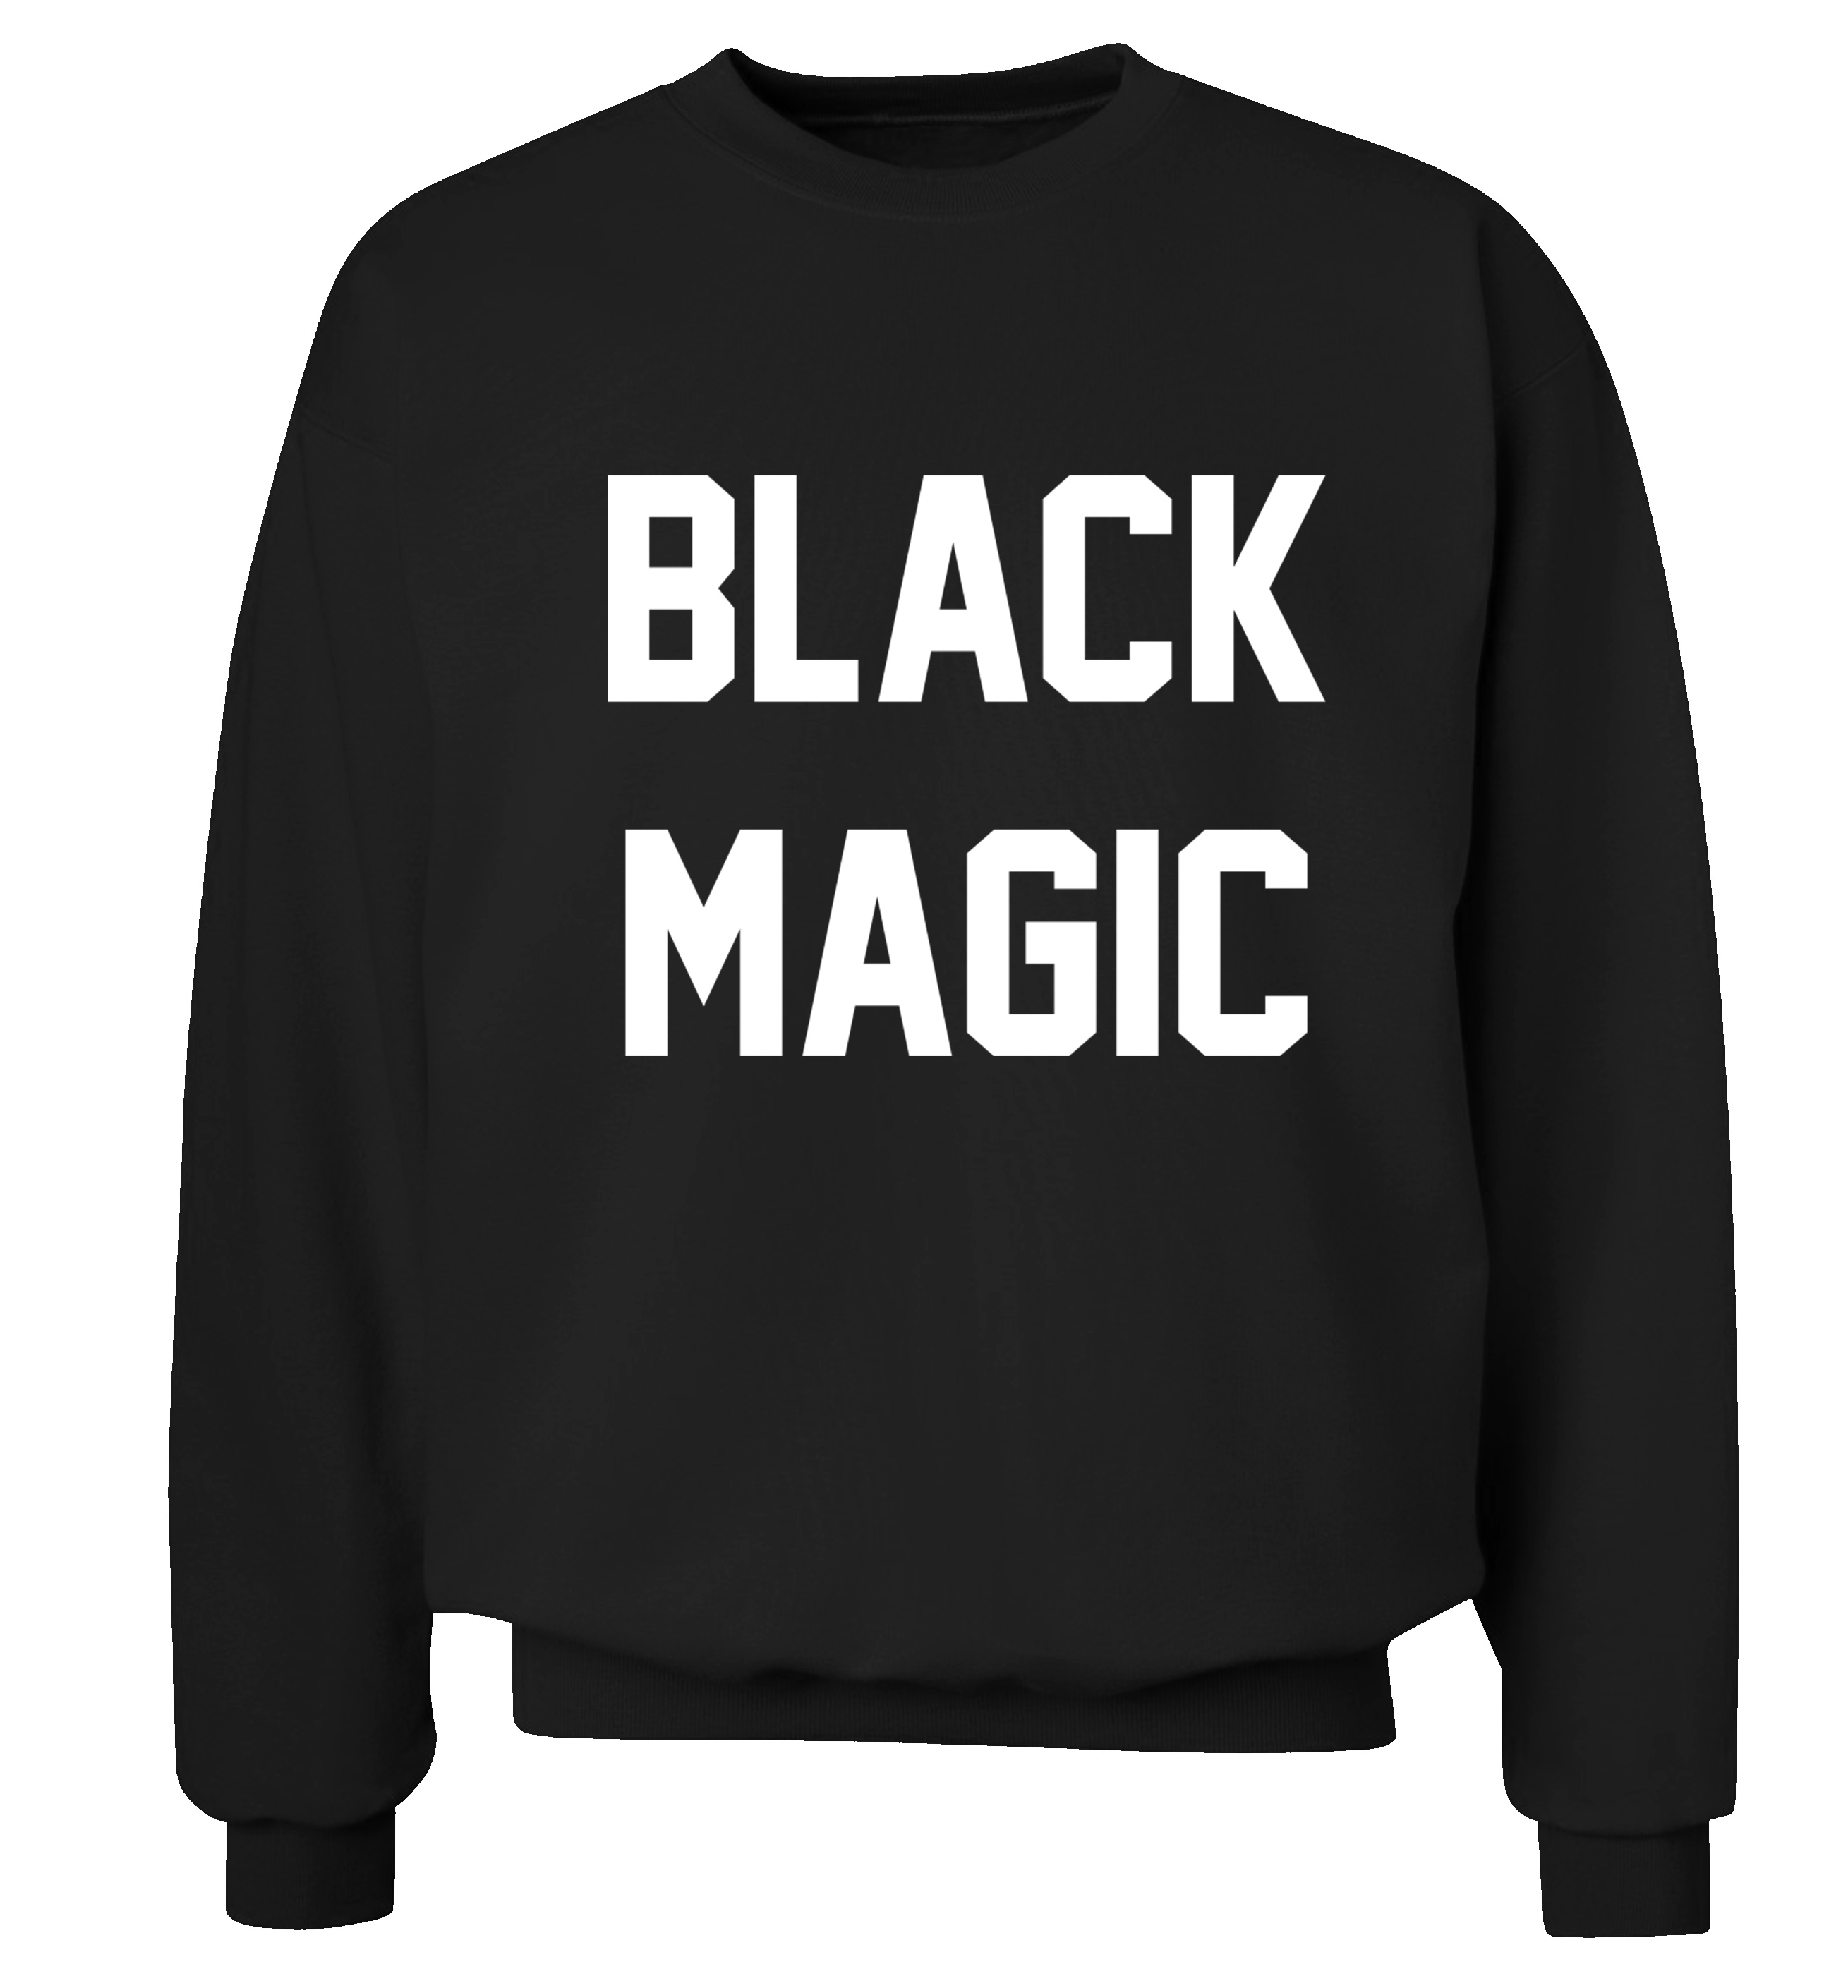 Black Magic Jumper White Hipster Tumblr Instagram Weheartit Music Lyrics Pop Little Mixer Jesy Witch Halloween